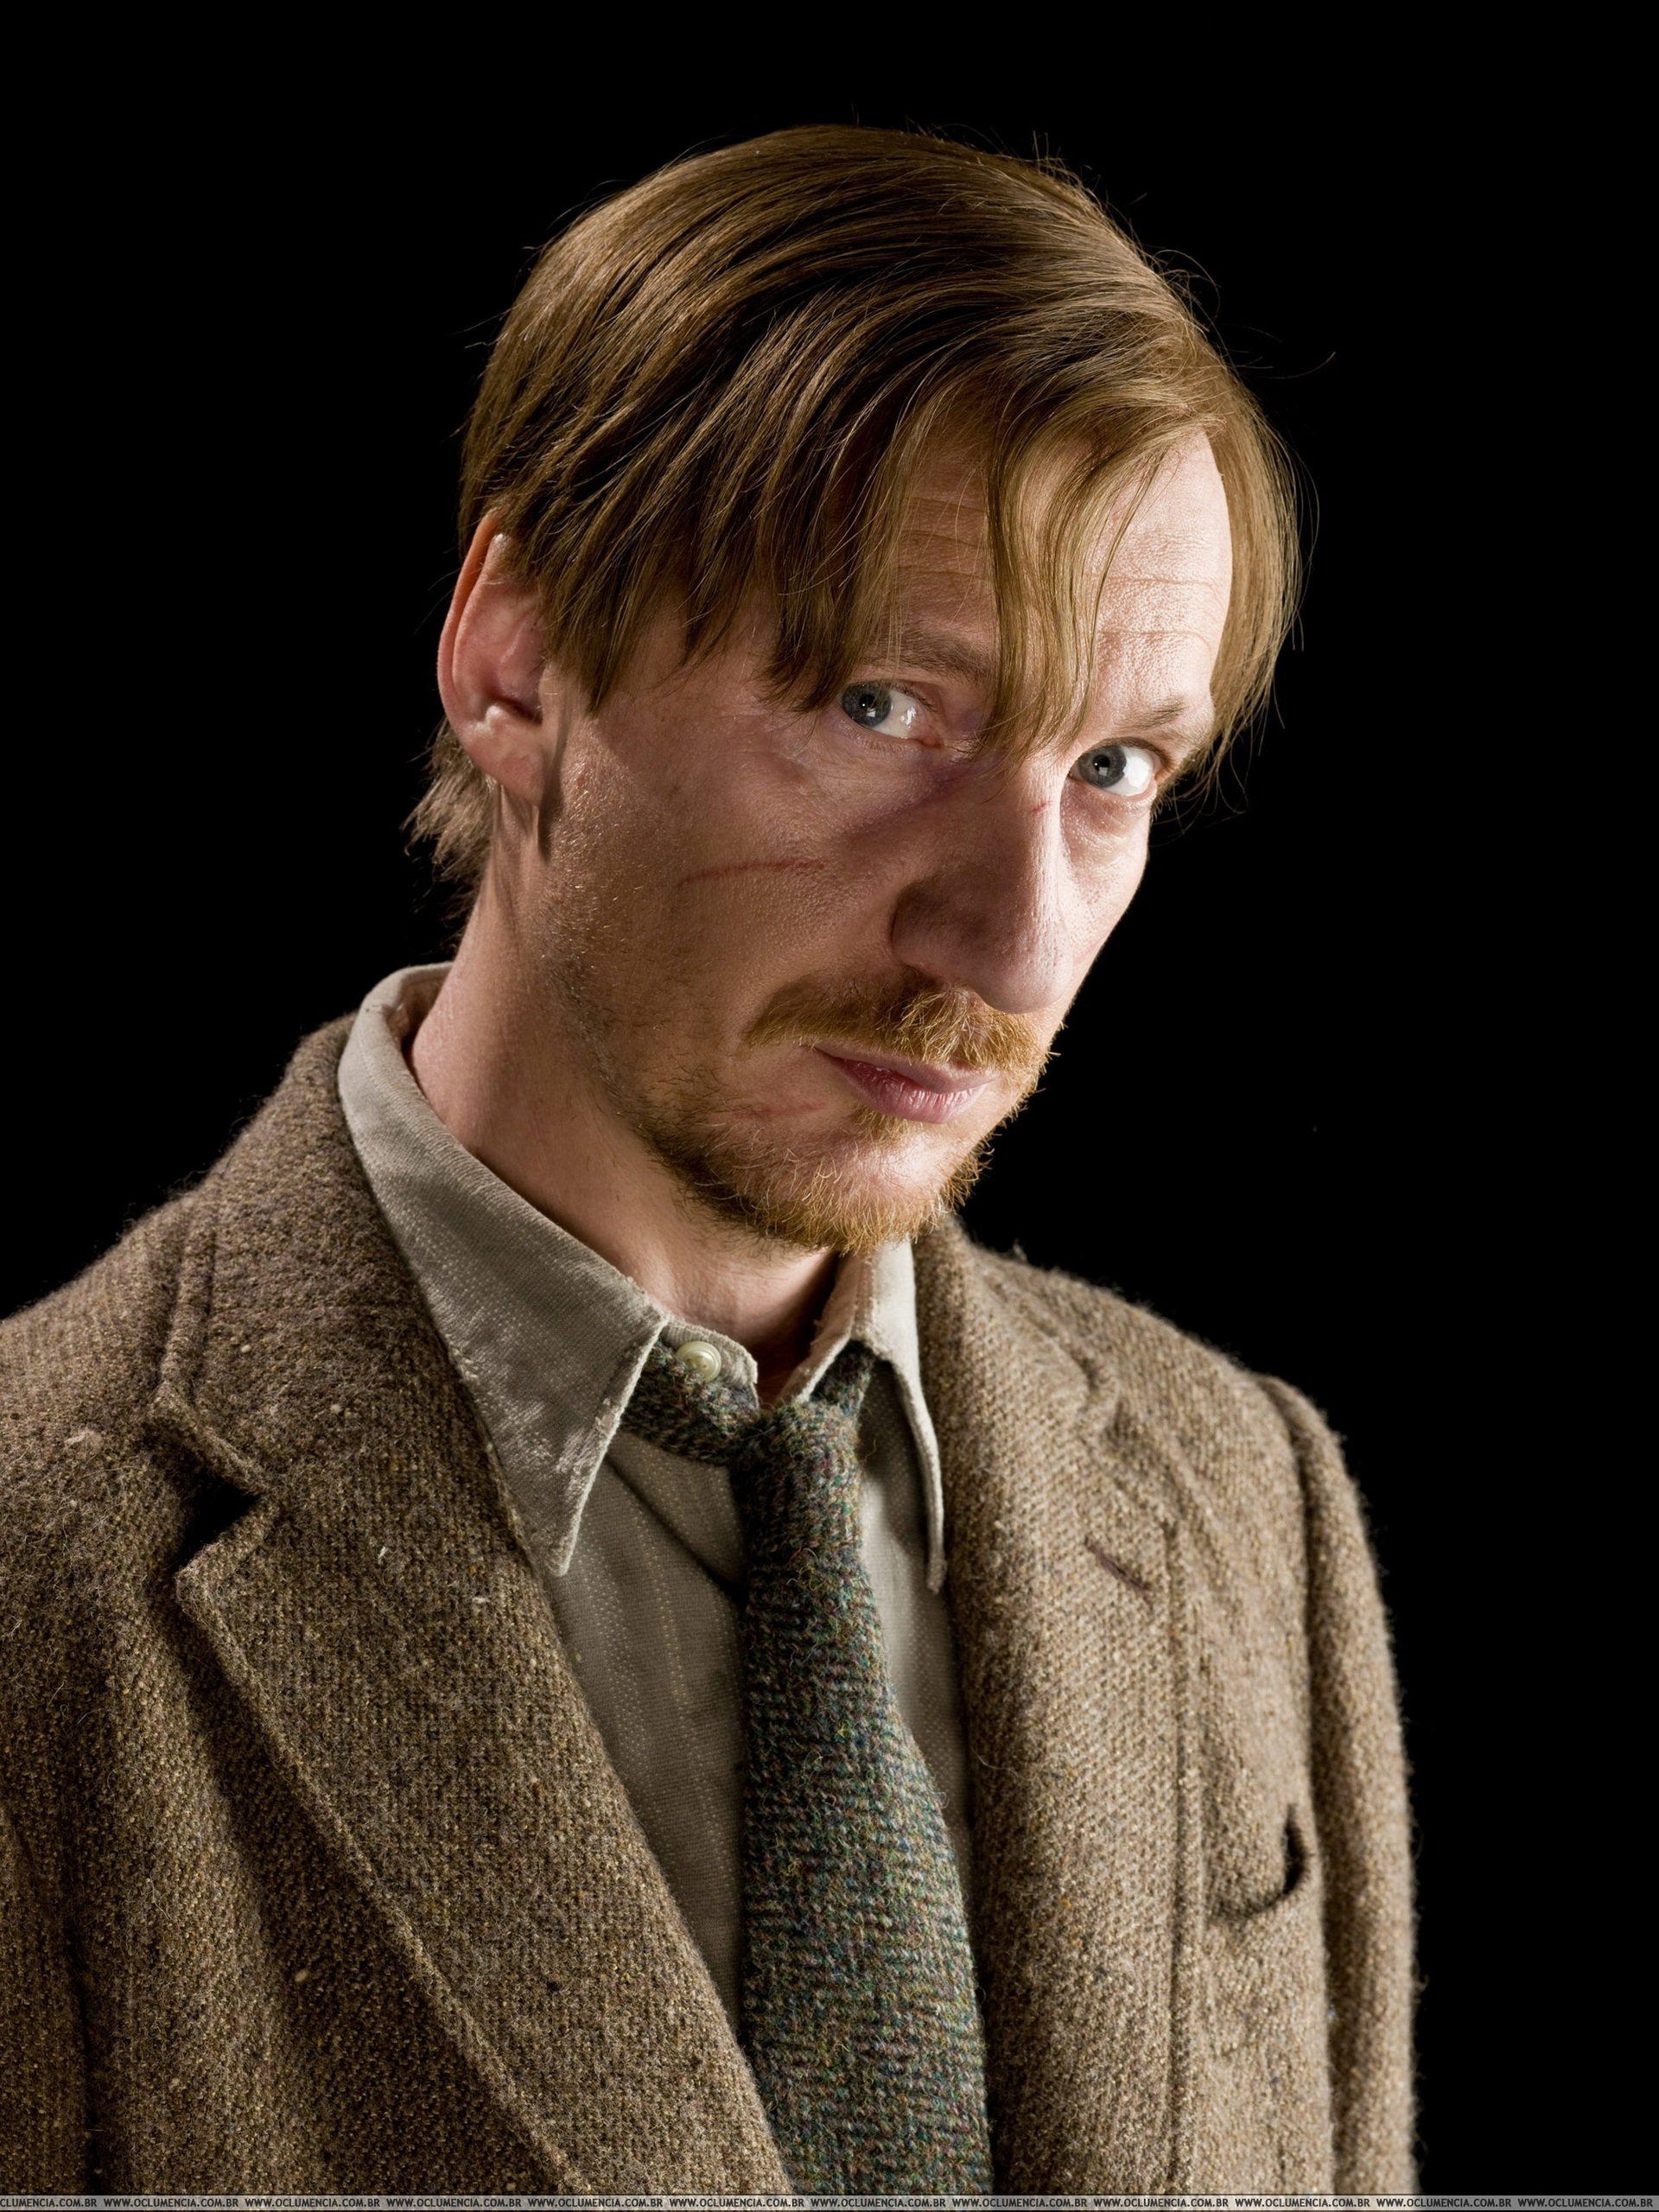 David thewlis free pictures video images news webcam